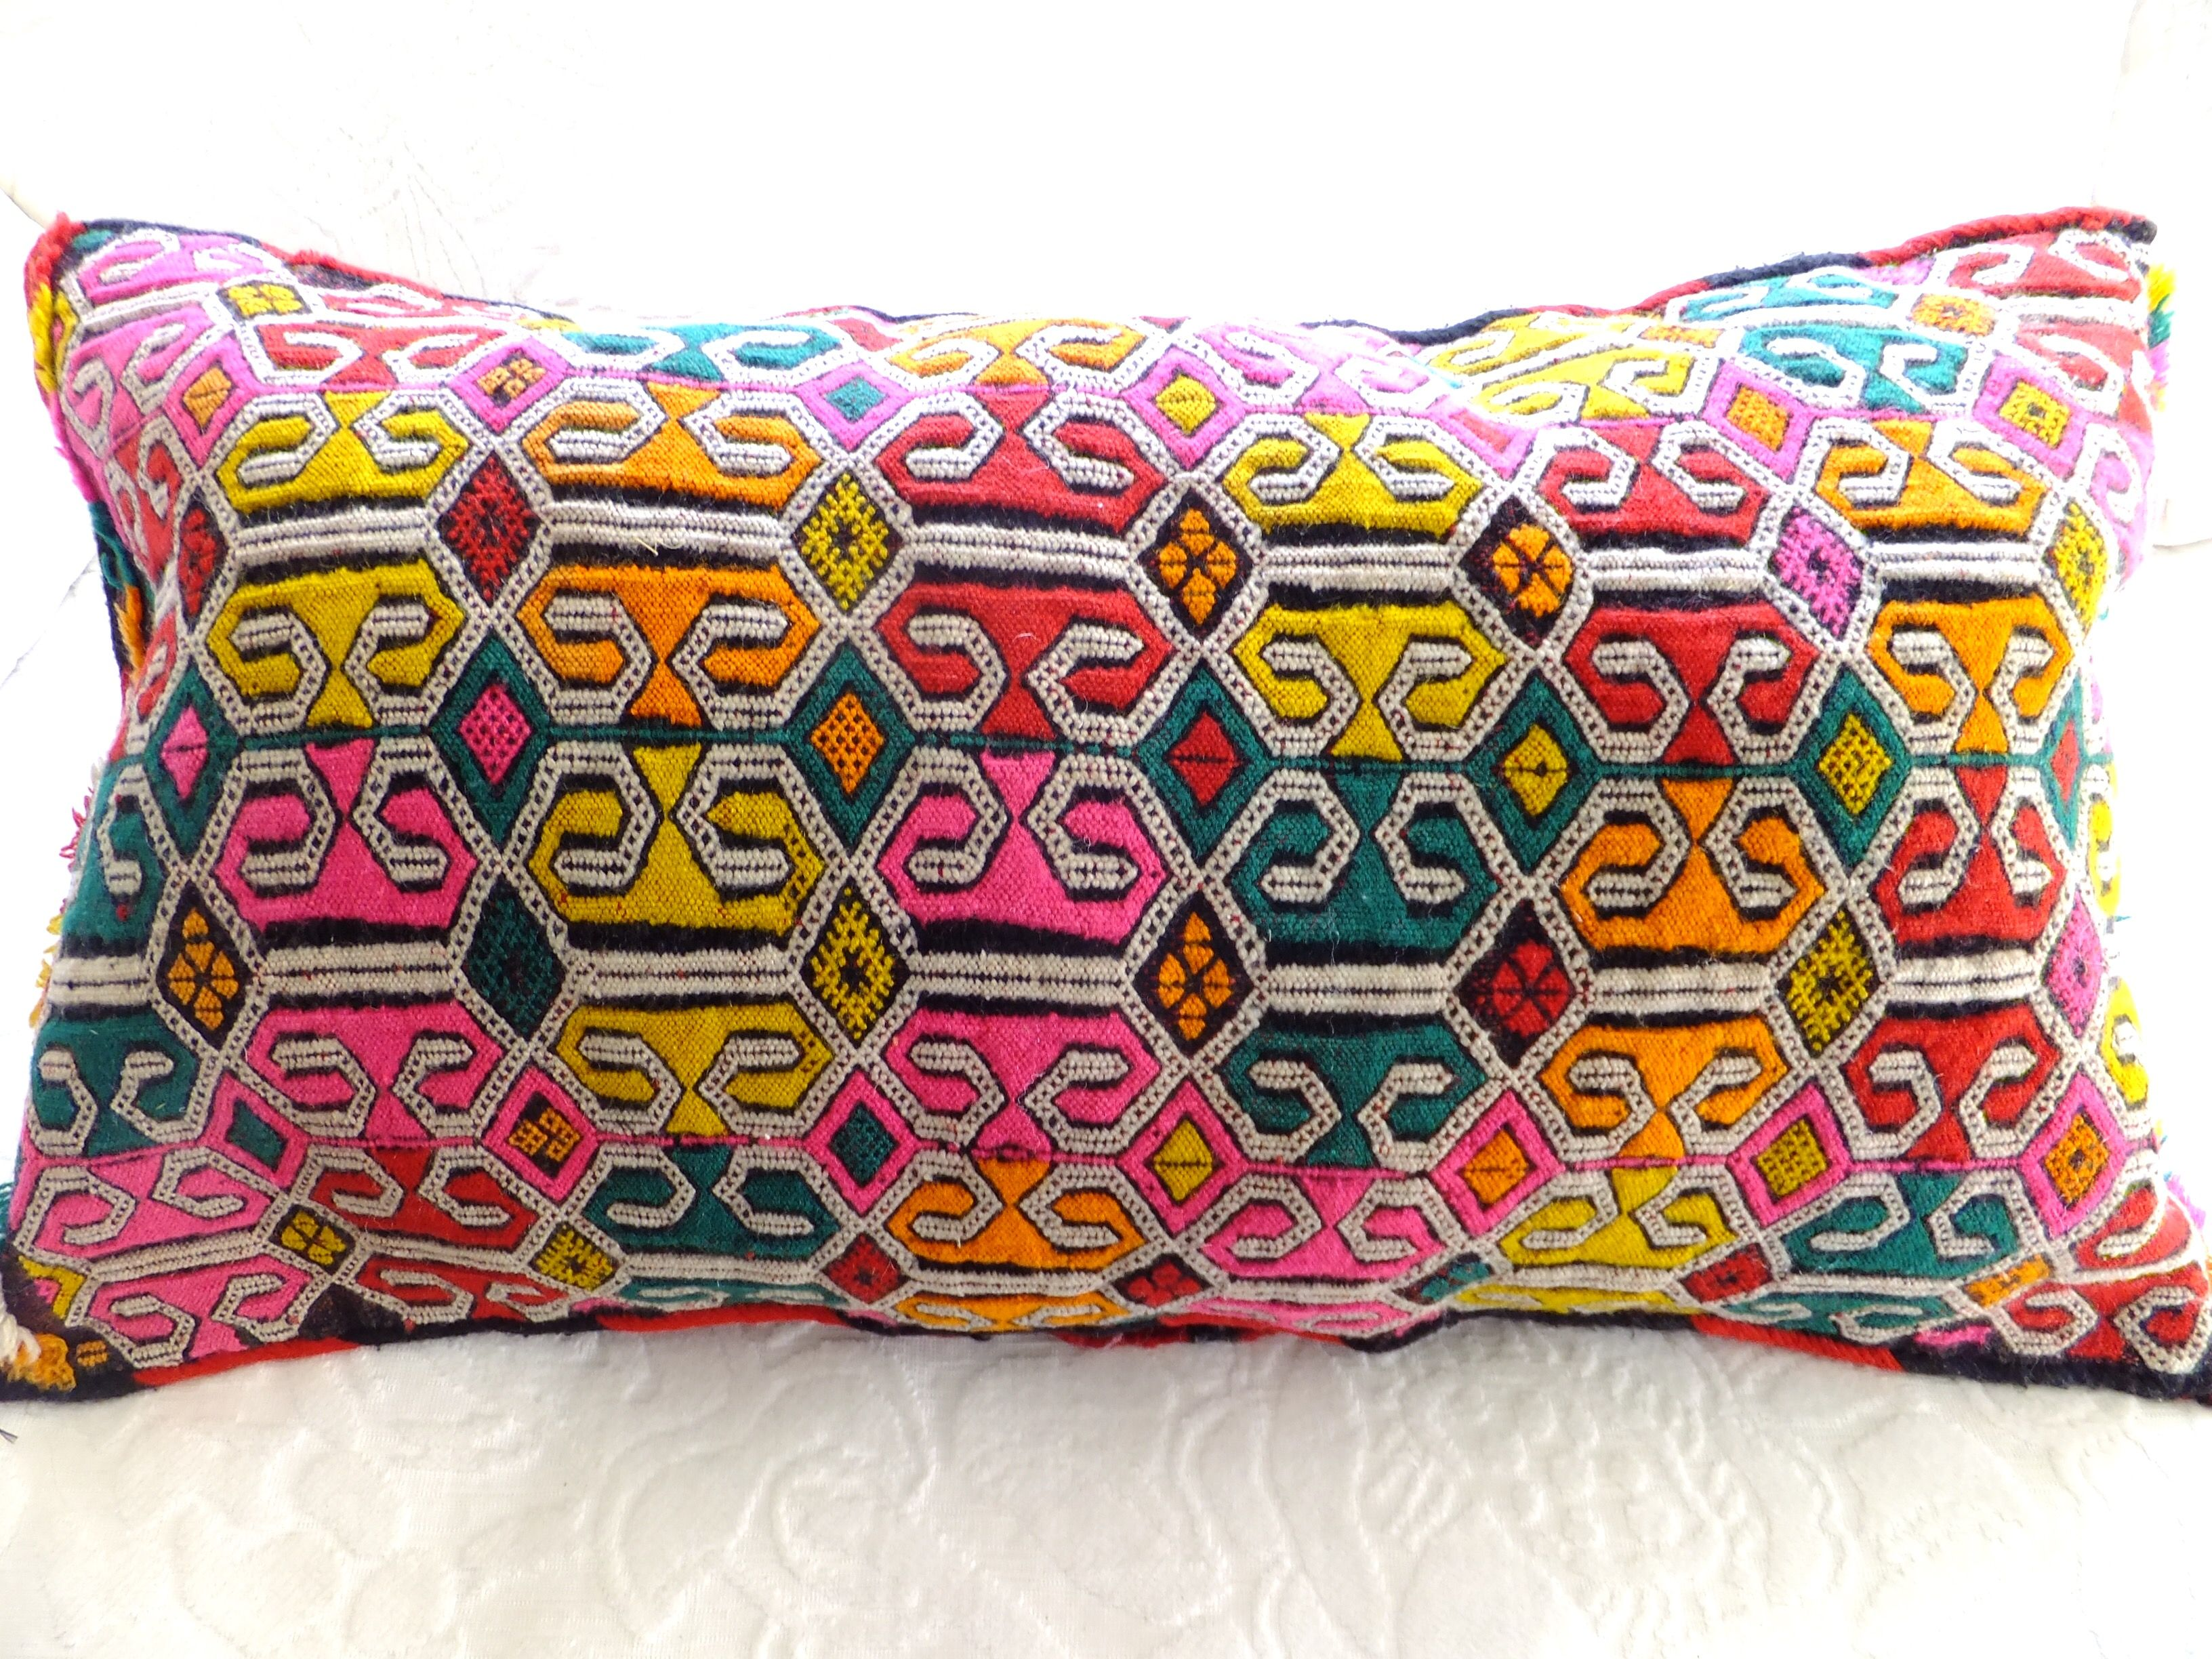 Moroccan Berber Pillow Moroccan Kilim Pillow Cover s